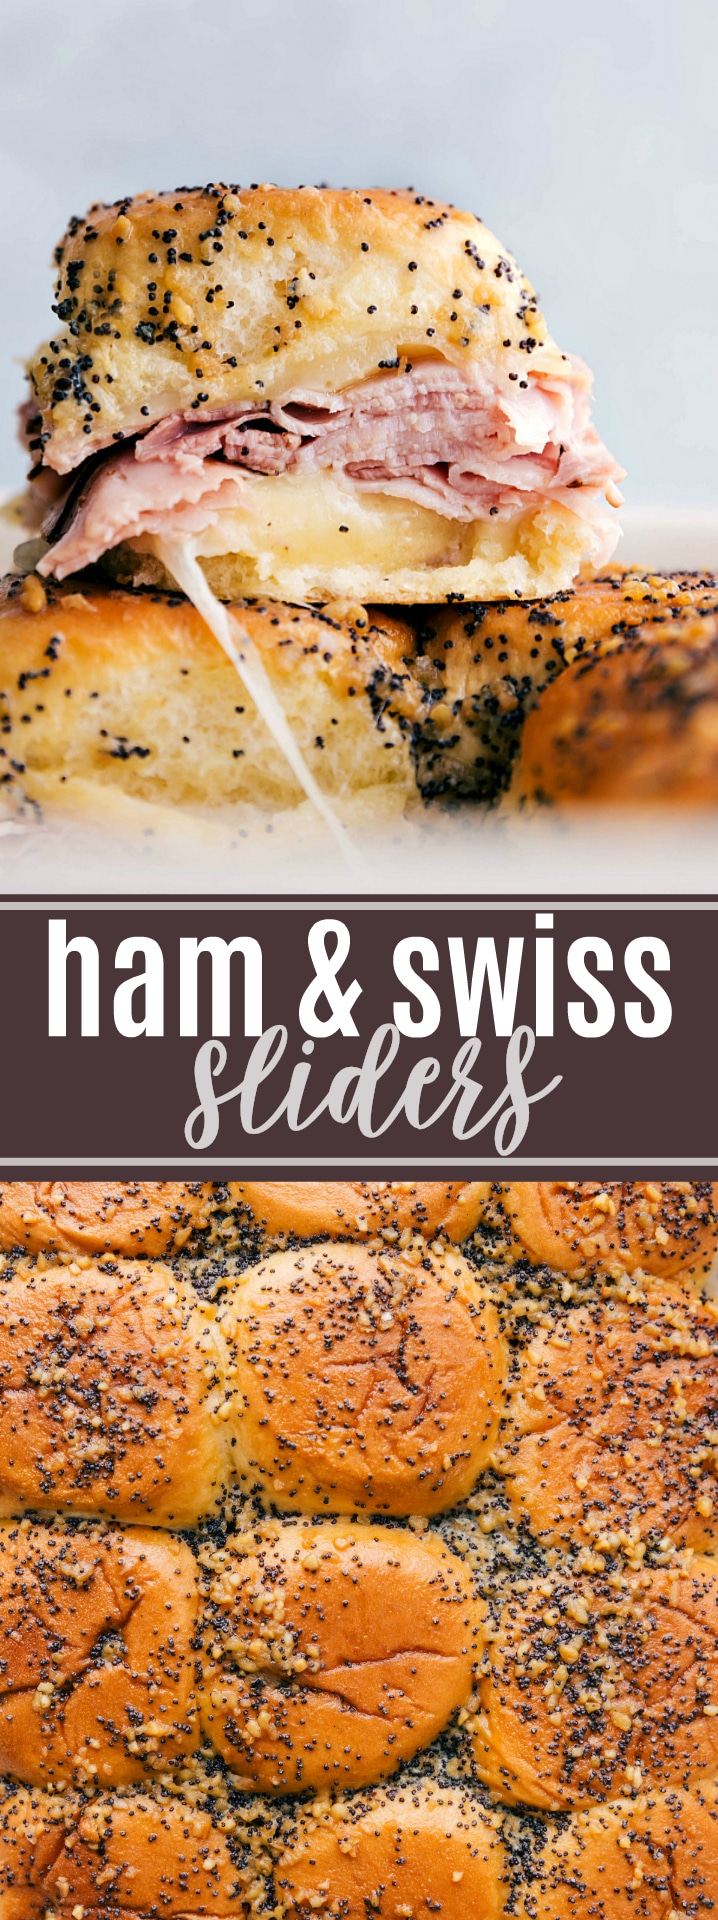 Buttery and delicious party food: ham and cheese sliders with sweet Hawaiian rolls, deli (or leftover holiday) ham, swiss cheese, and a deliciously seasoned buttery topping. via chelseasmessyapron.com #ham #swiss #slider #sliders #game #day #food #gameday #football #appetizer #app #sandwich #quick #easy #poppyseed